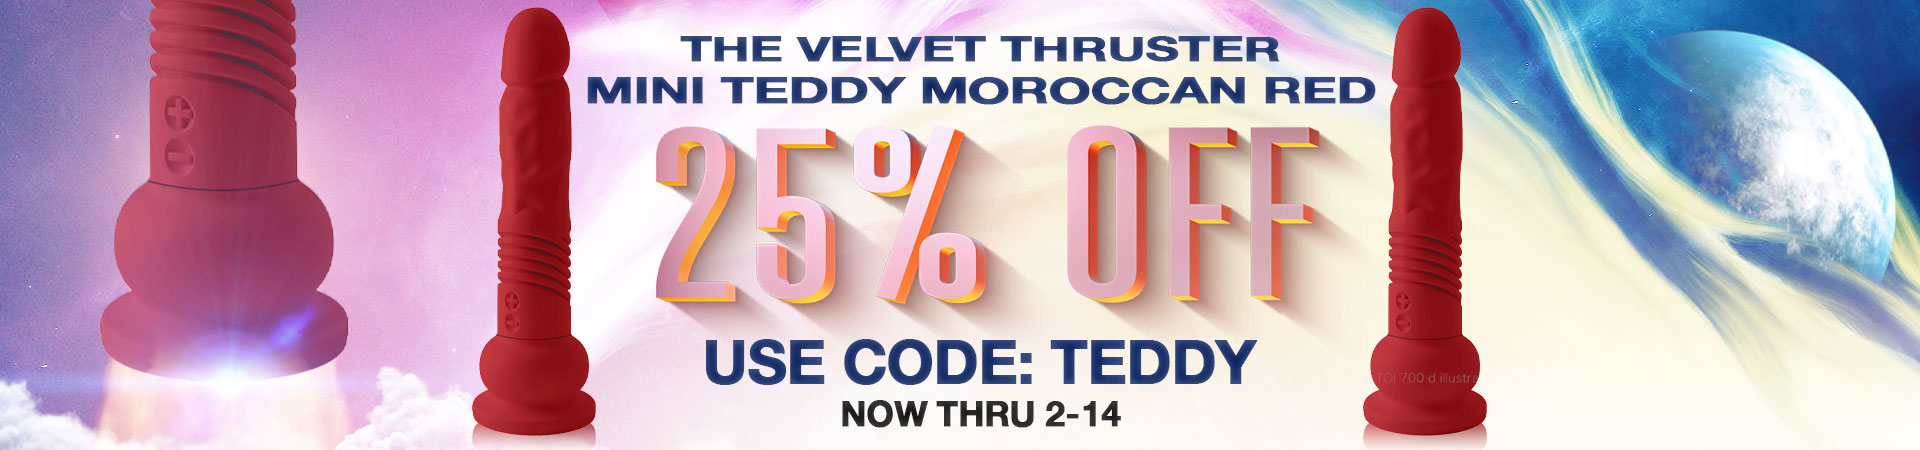 the velvet thruster mini teddy moroccan red 25% off use code: TEDDY now through 2/14